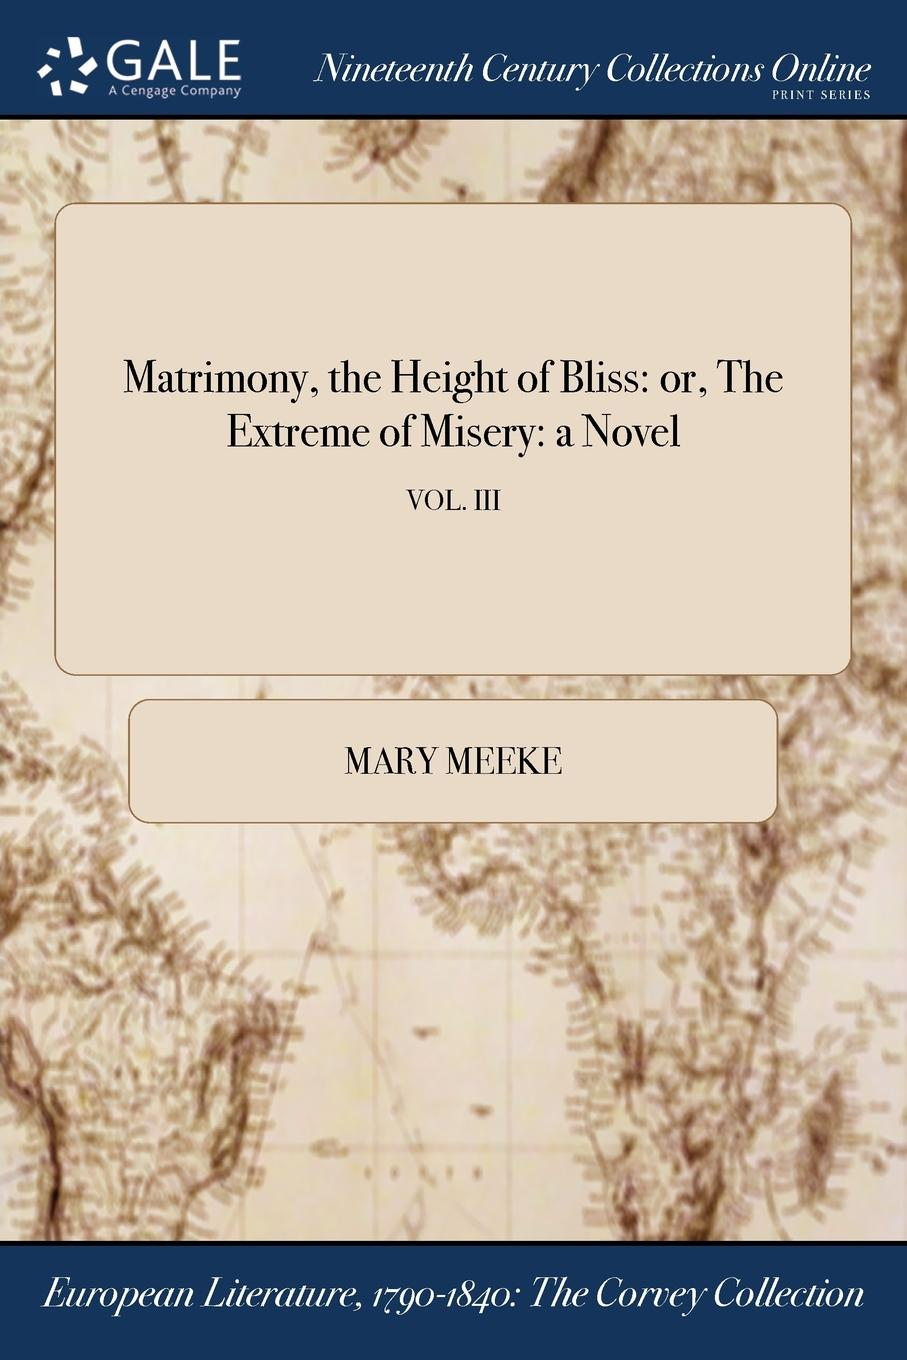 Mary Meeke Matrimony, the Height of Bliss. or, The Extreme of Misery: a Novel; VOL. III